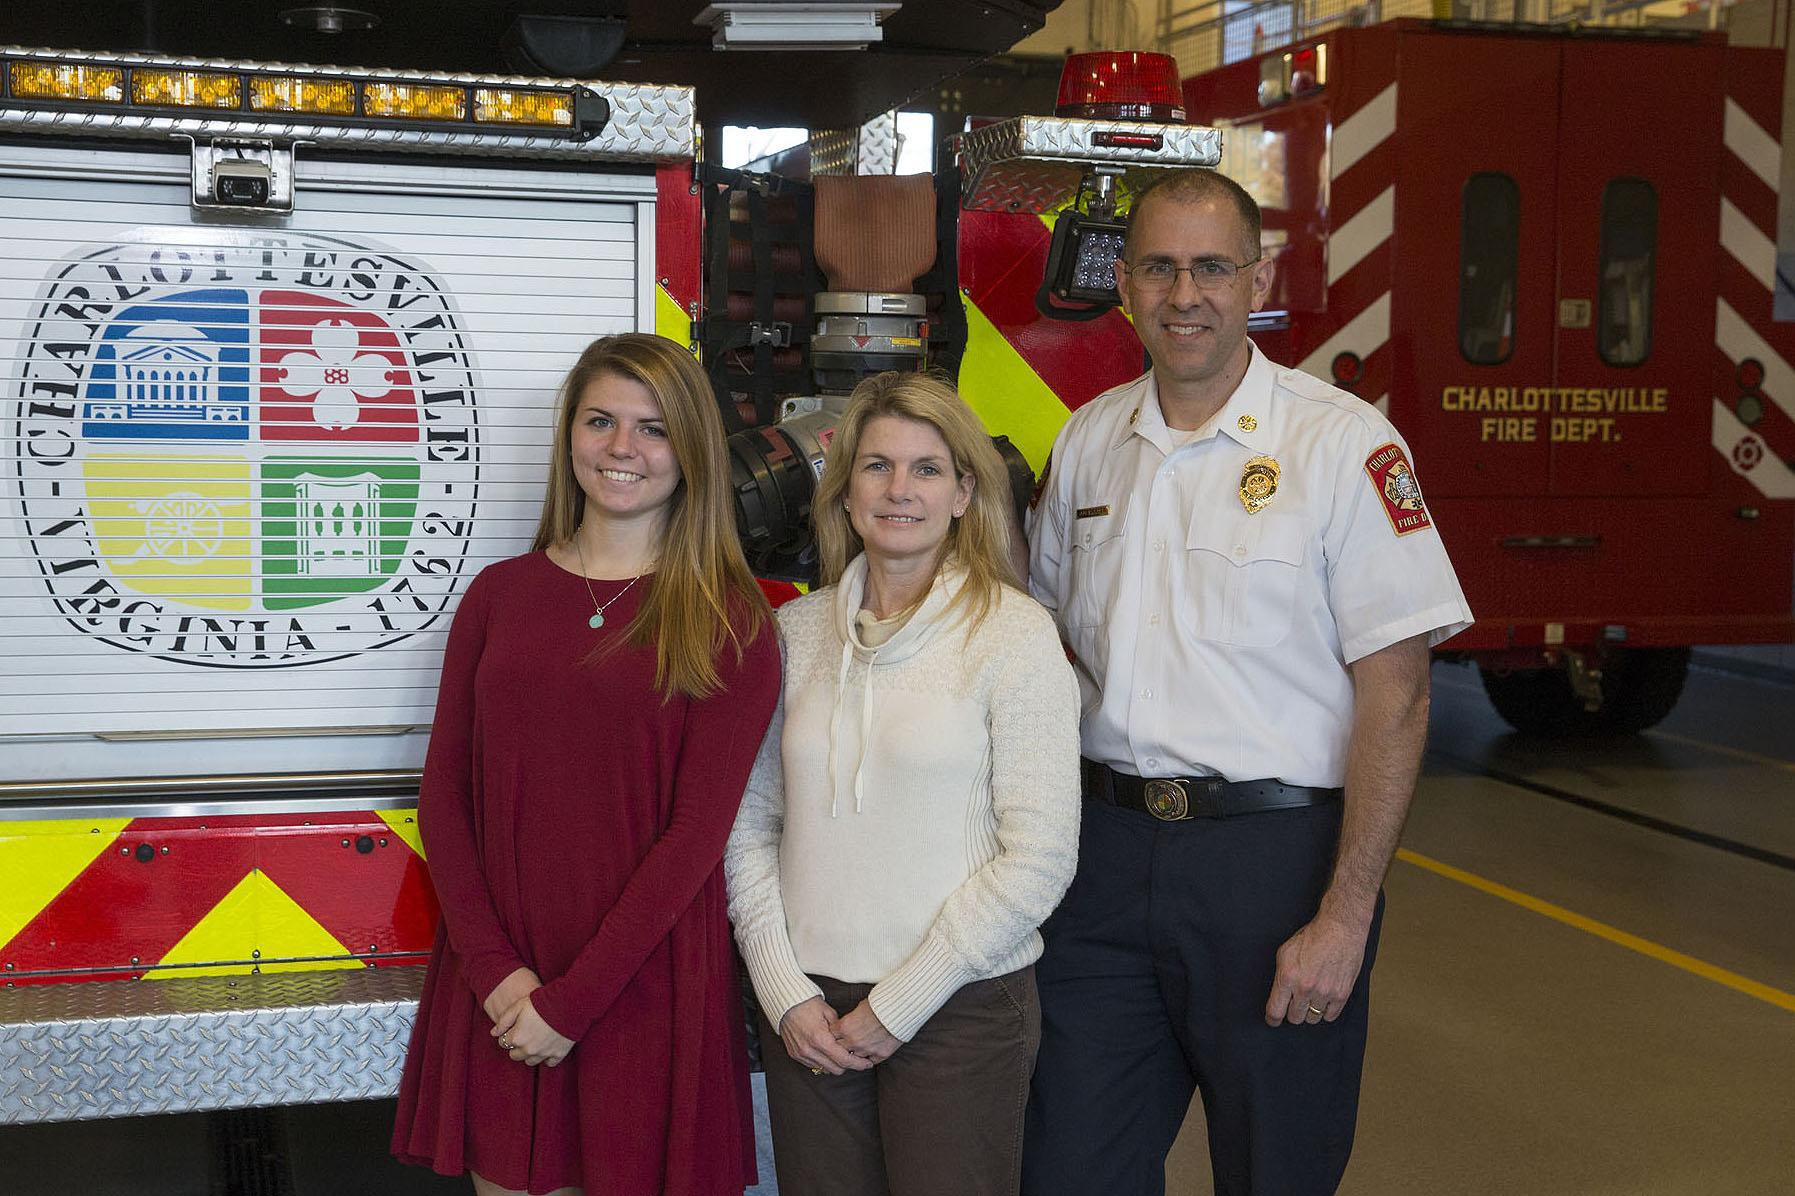 Charlottesville's new fire chief, Andrew Baxter, right, is a UVA School of Nursing alumnus, while his daughter, Kate, left, and wife, Barbara, are currently students there.